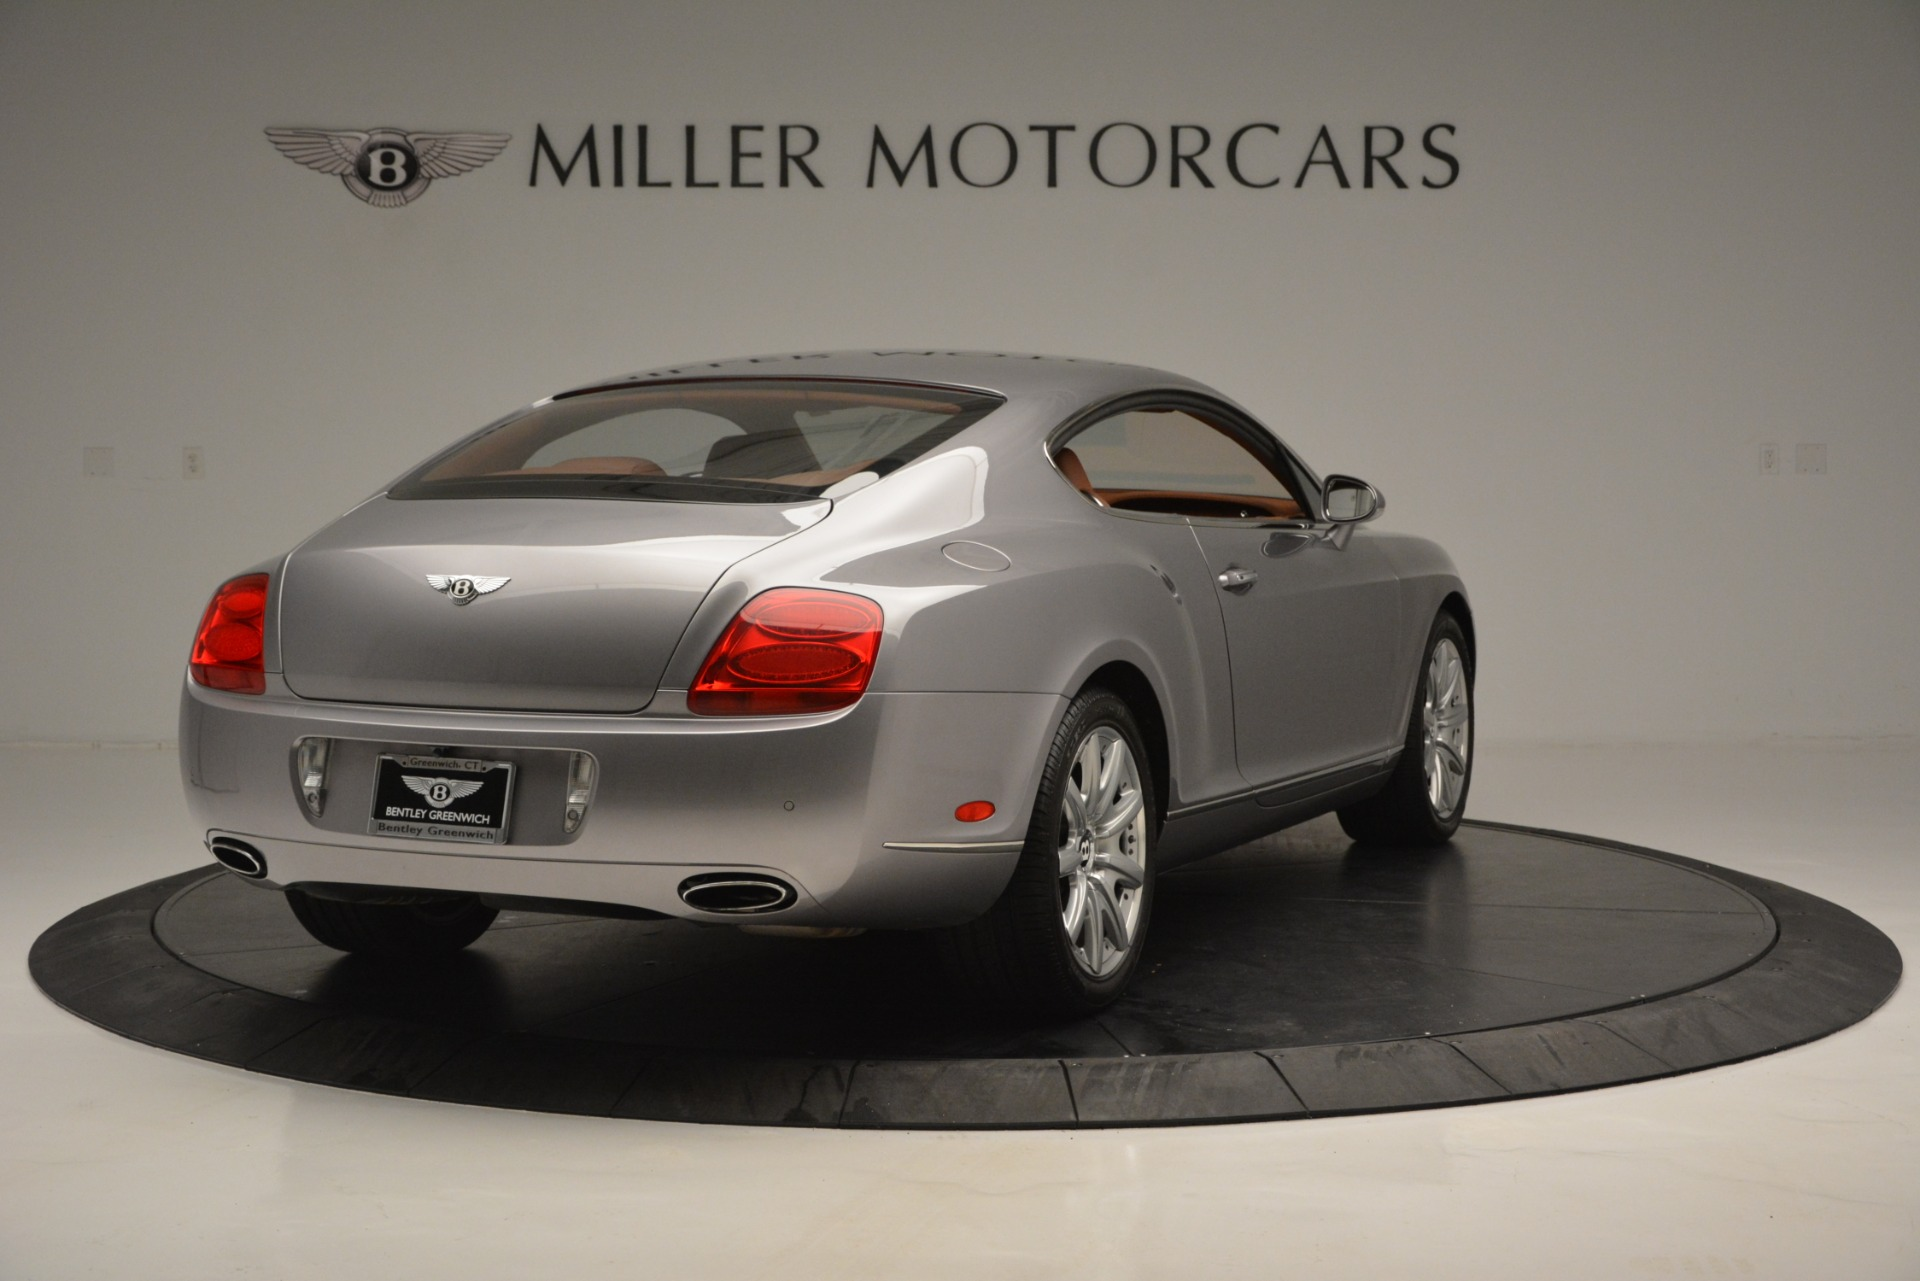 Used 2005 Bentley Continental GT GT Turbo For Sale In Greenwich, CT 2726_p7